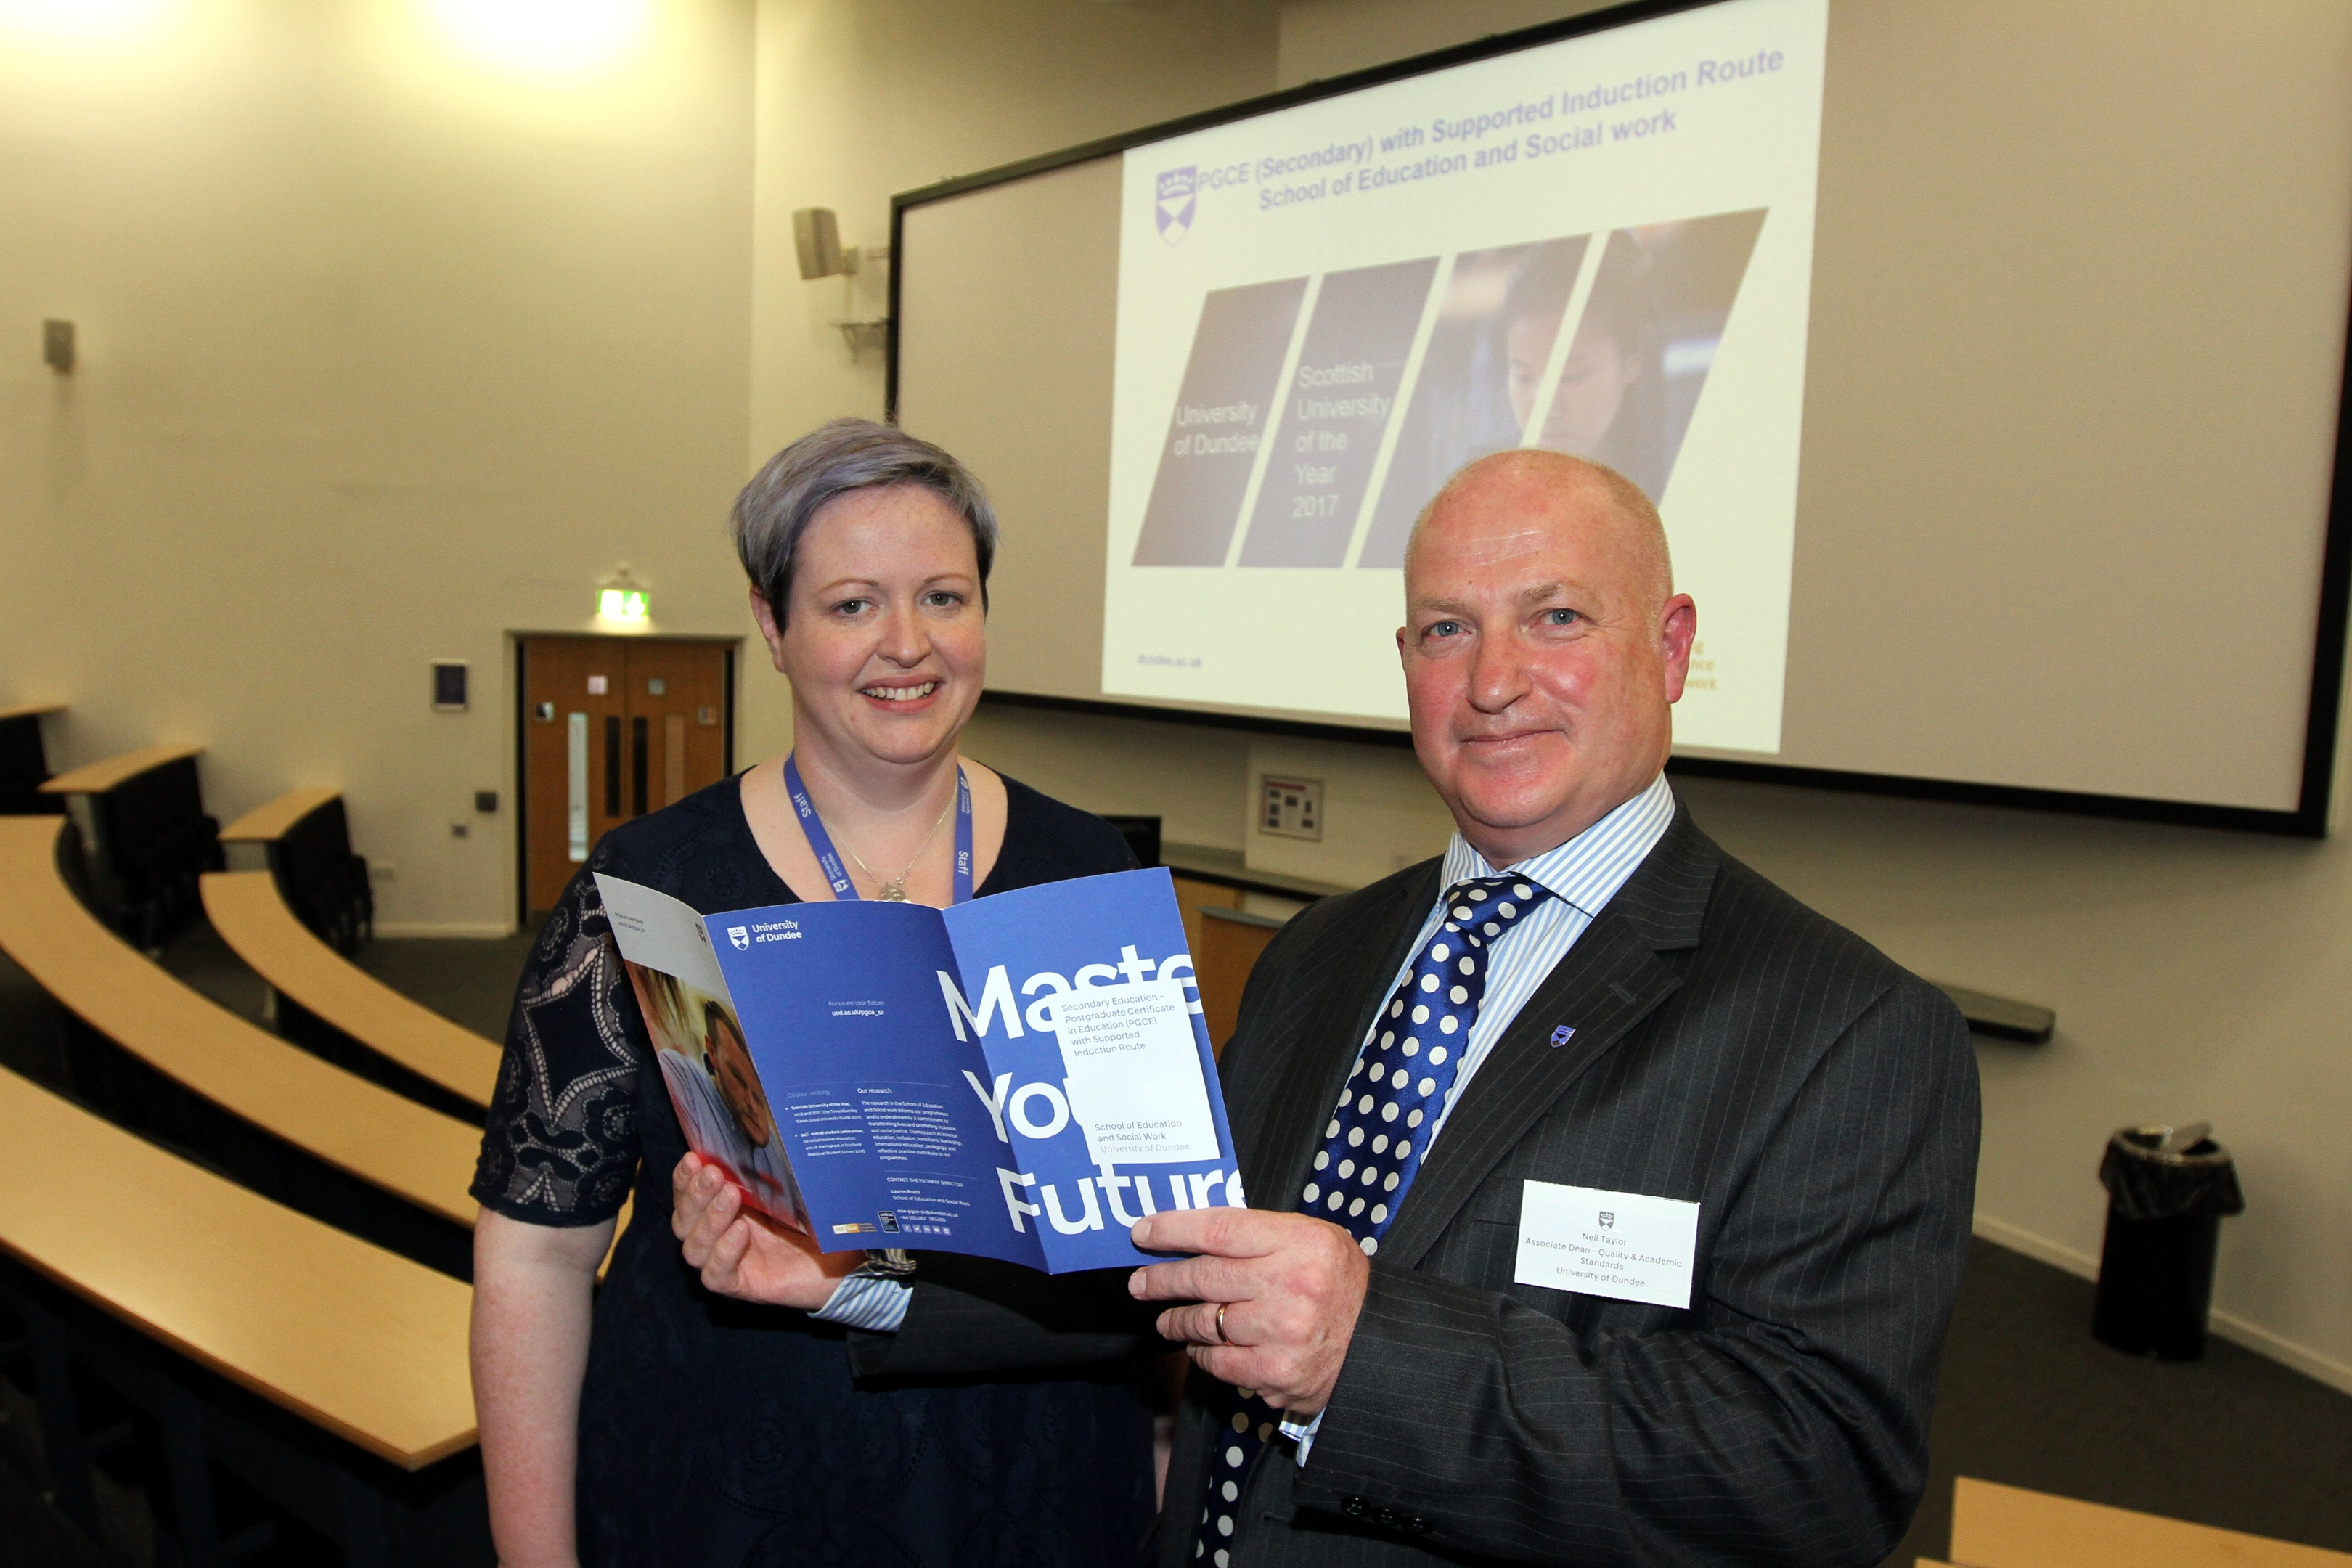 Lauren Boath (Pathway Director PGCE) & Neil Taylor ( Associate Dean - Quality & Academic Standards at University of Dundee,